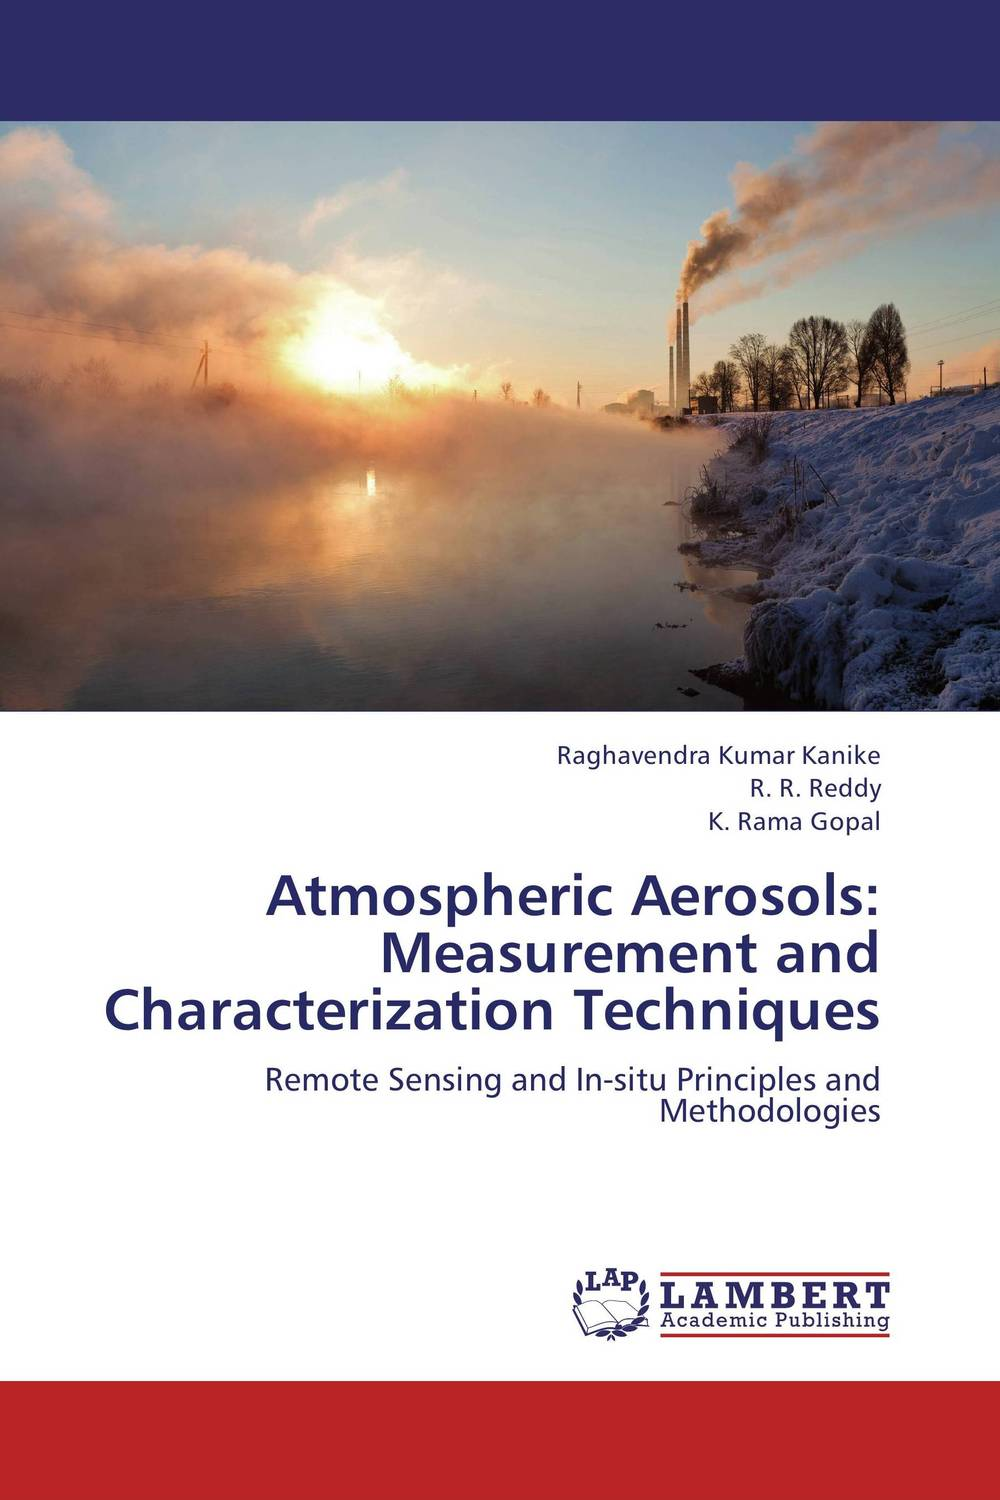 Atmospheric Aerosols: Measurement and Characterization Techniques sanat kumar das and achuthan jayaraman atmospheric radiative forcing